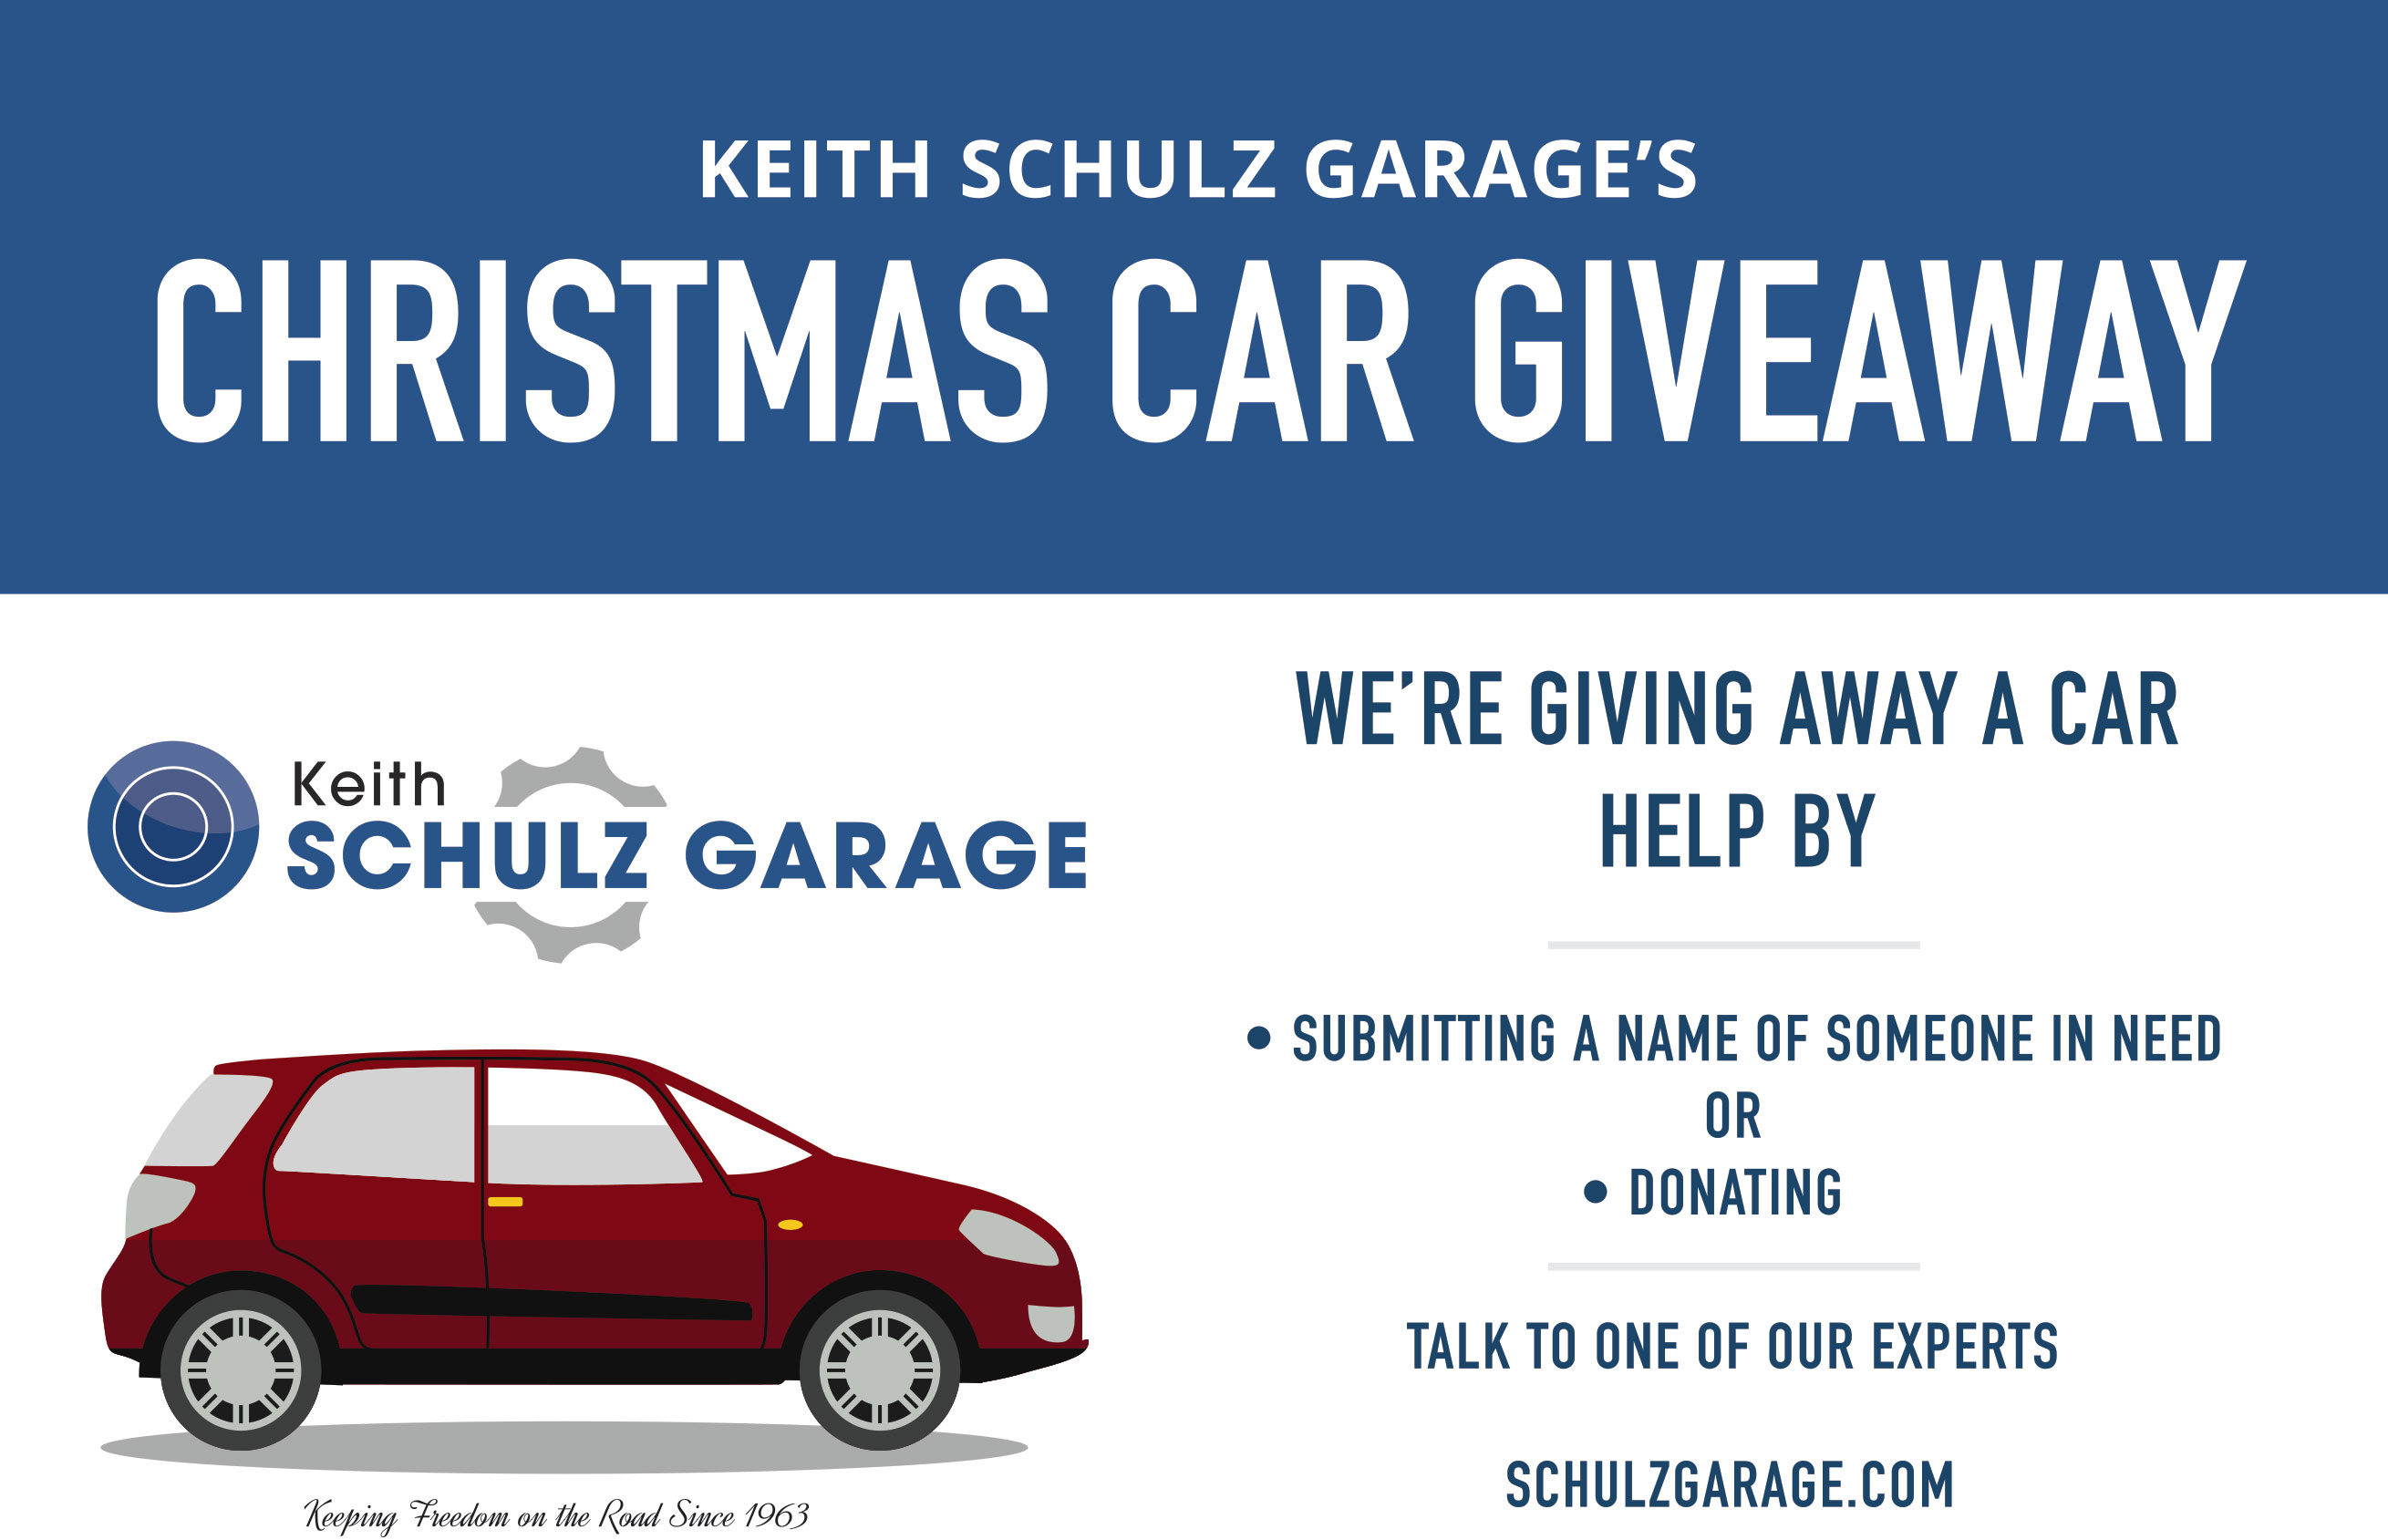 Car Giveaway 2017 >> Keith Schulz Garage Ksg Car Giveaway 2017 1